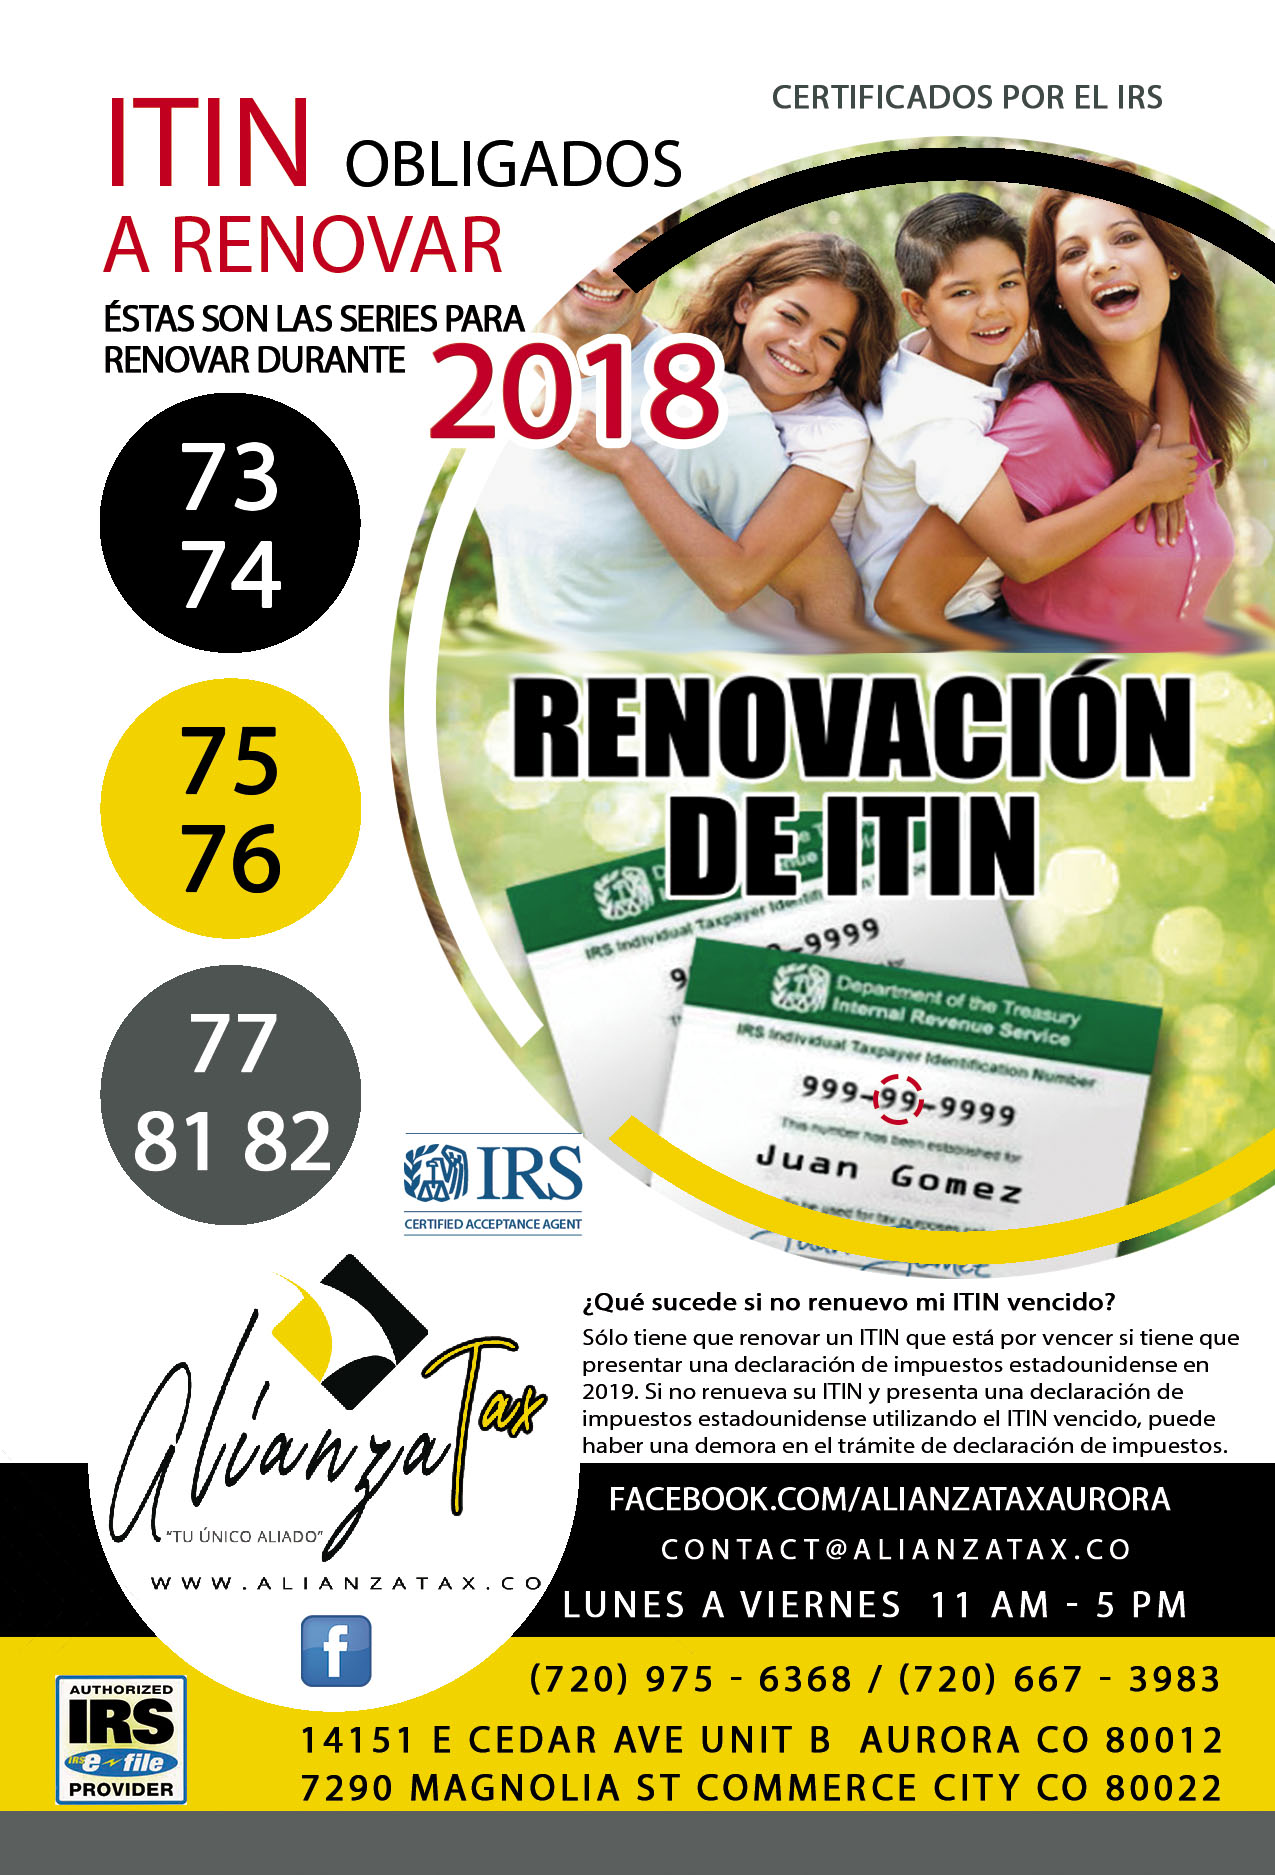 ALIANZA TAX RENEW ITIN 2018